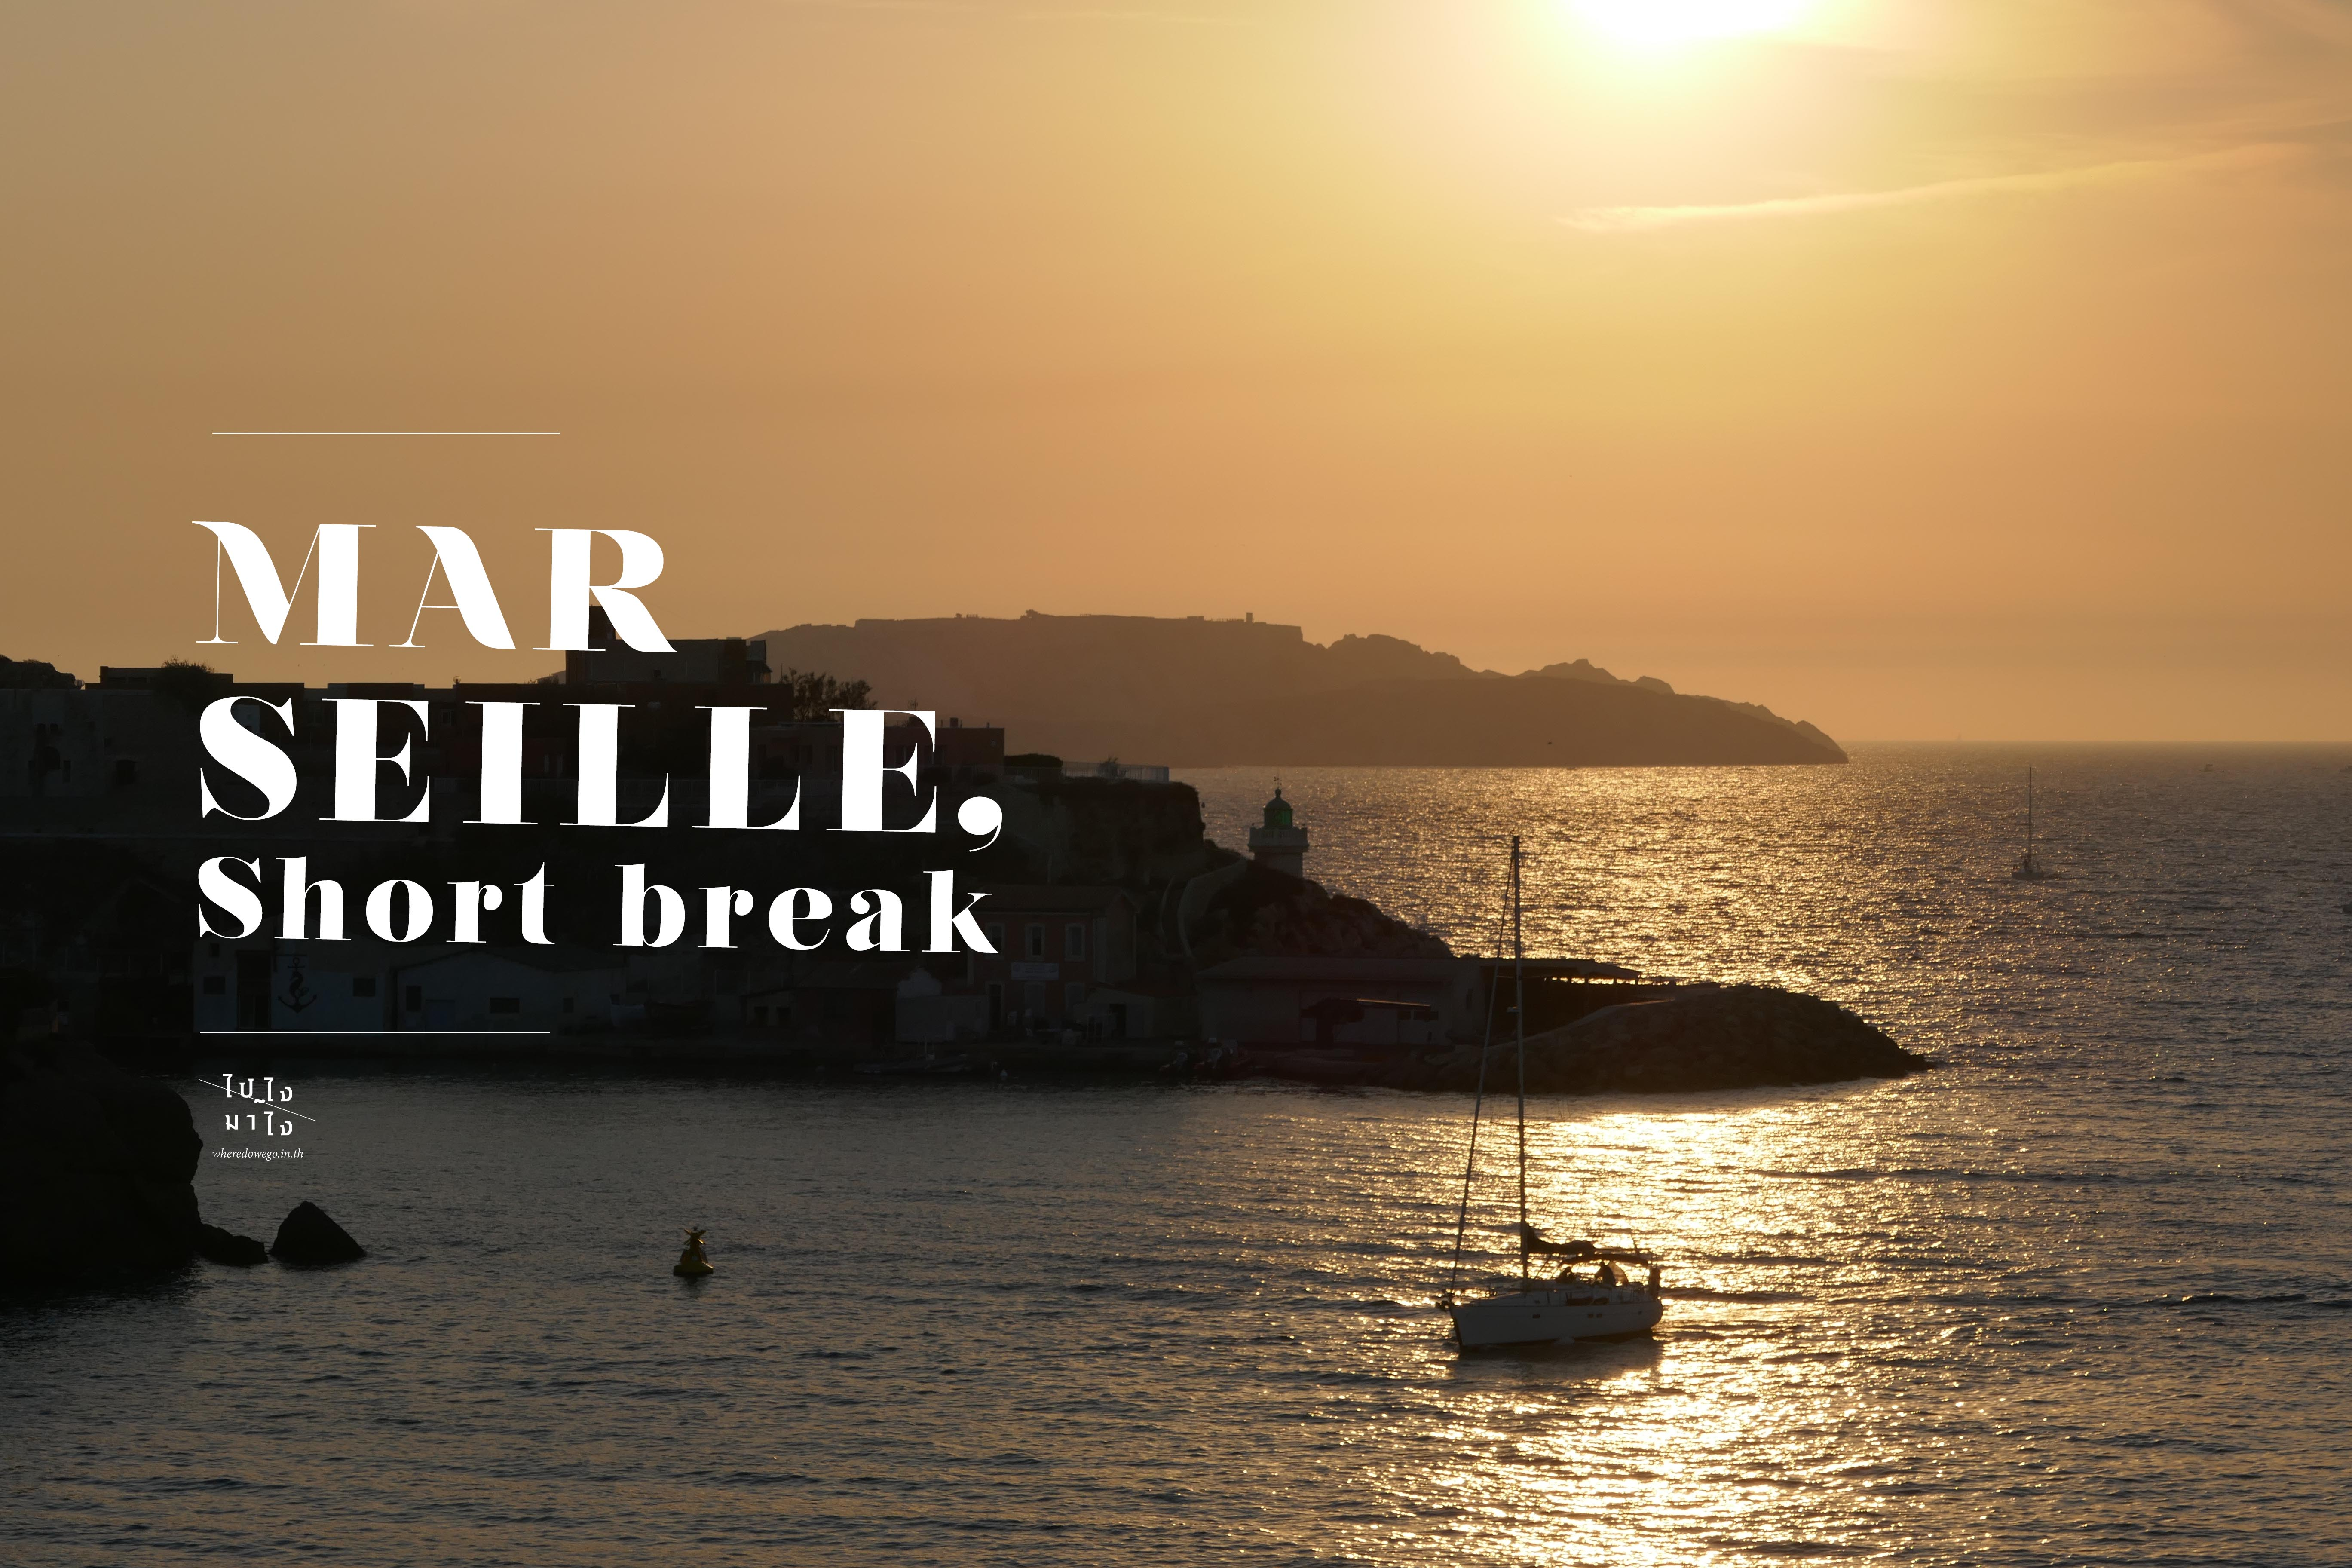 Marseille Short Break.